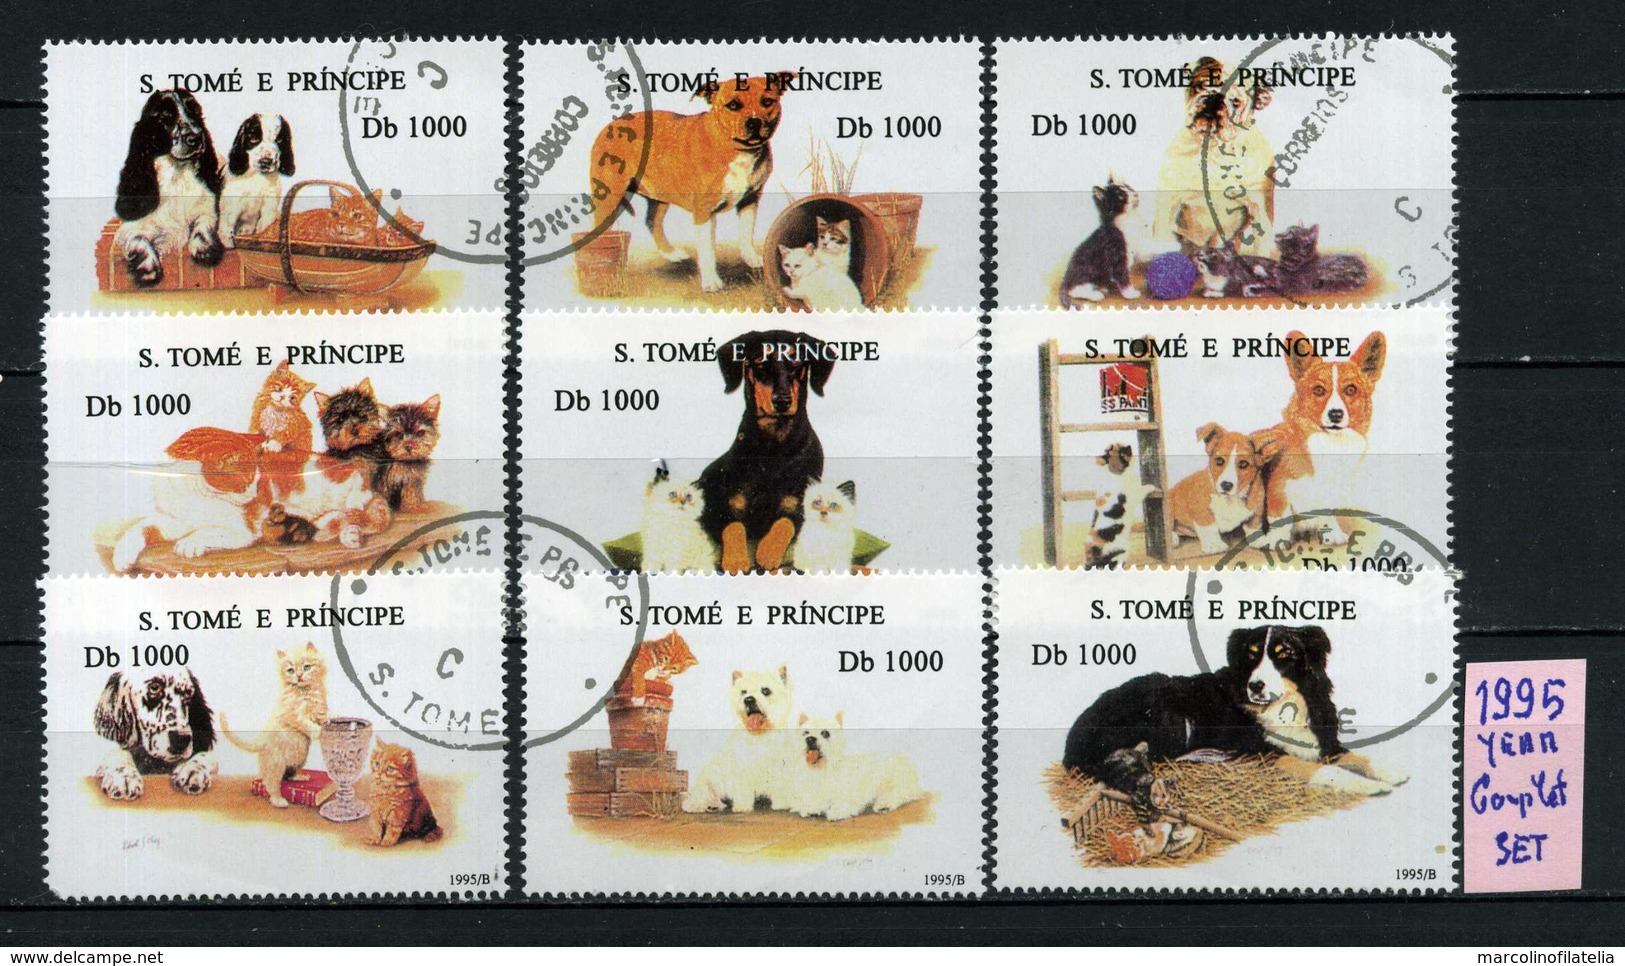 S. TOME' E PRINCIPE  - CANI - DOGS - Year 1995  - COMPLET  SET - Timbrati - Stamped - Affranchiè - Gestempelt. - Cani